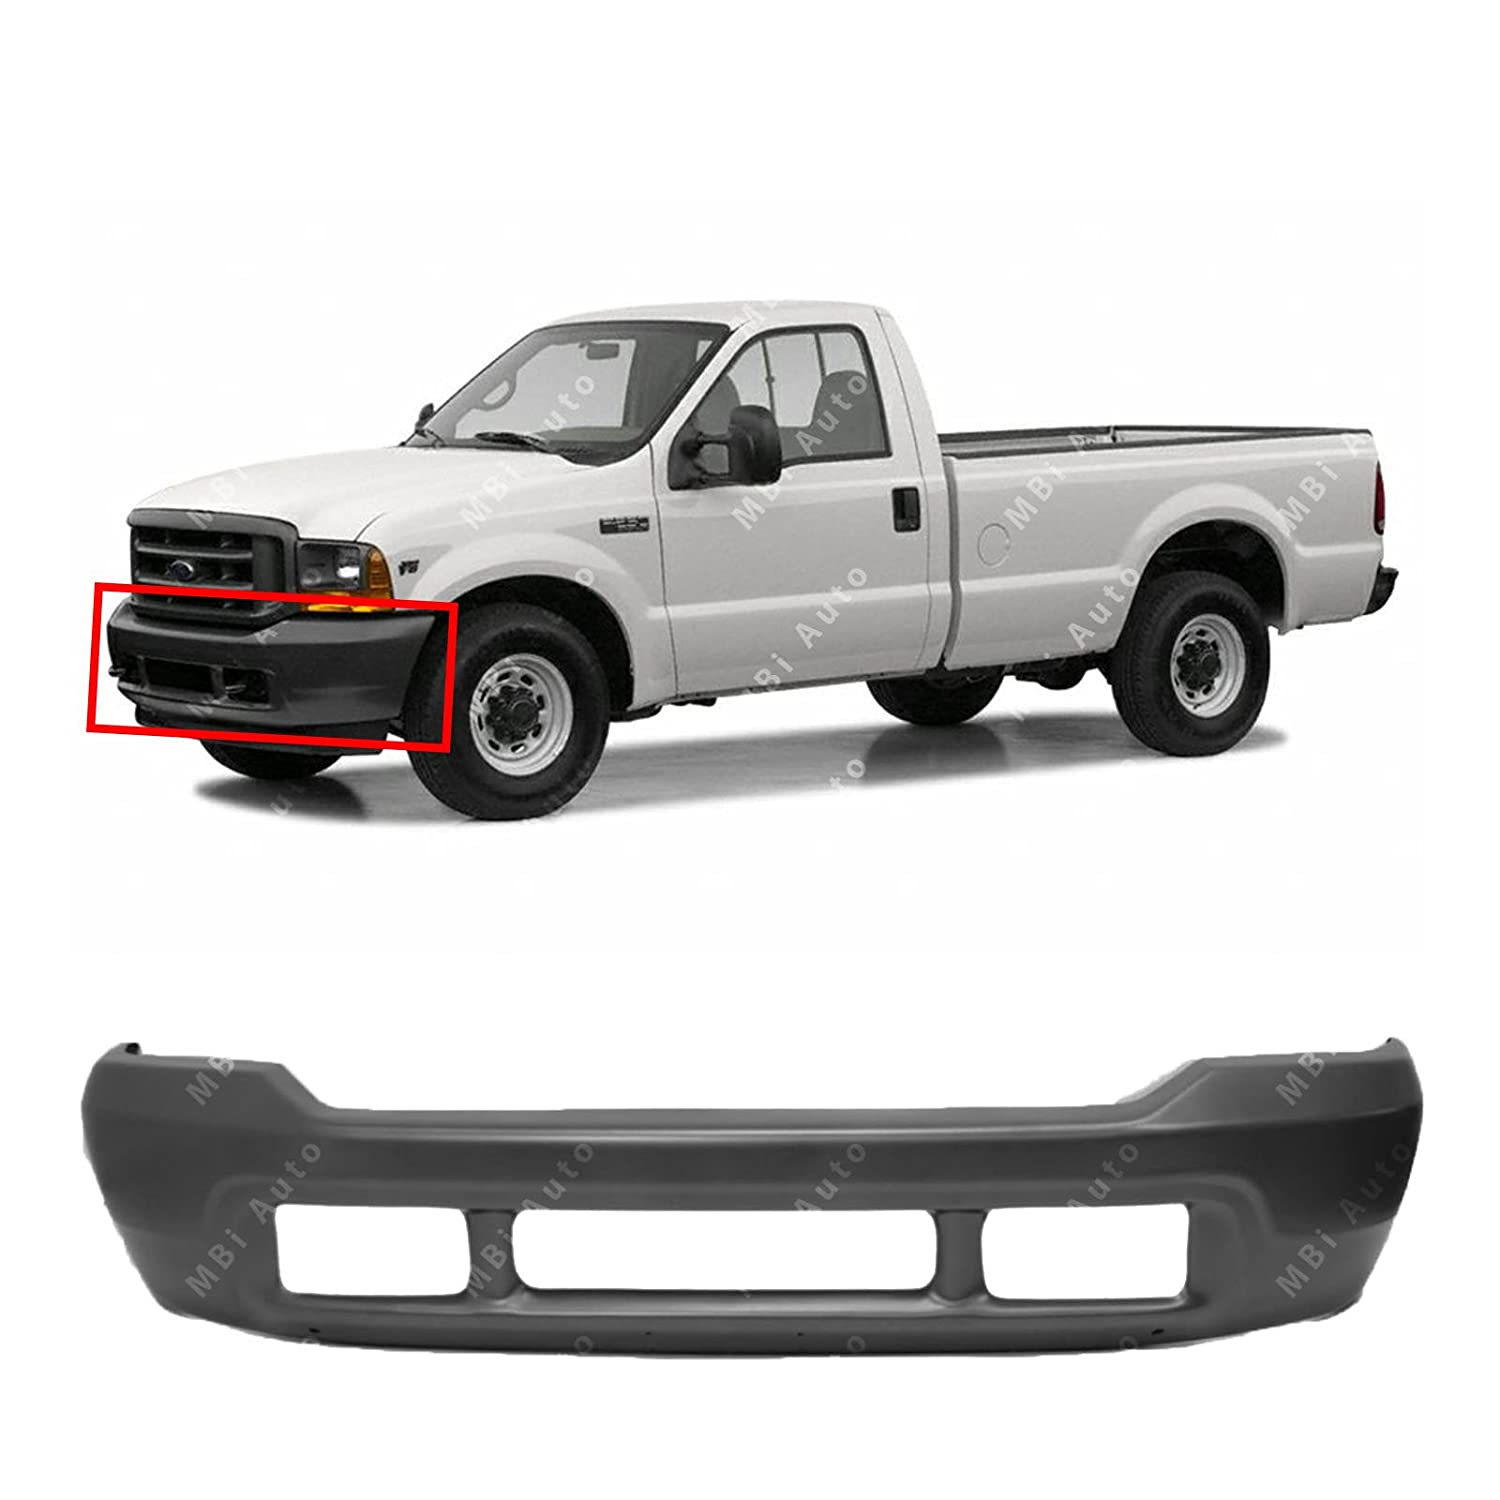 MBI AUTO - Primered, Steel Front Bumper Face Bar for 1999-2004 Ford F250 F350 Super Duty 99-04, FO1002365